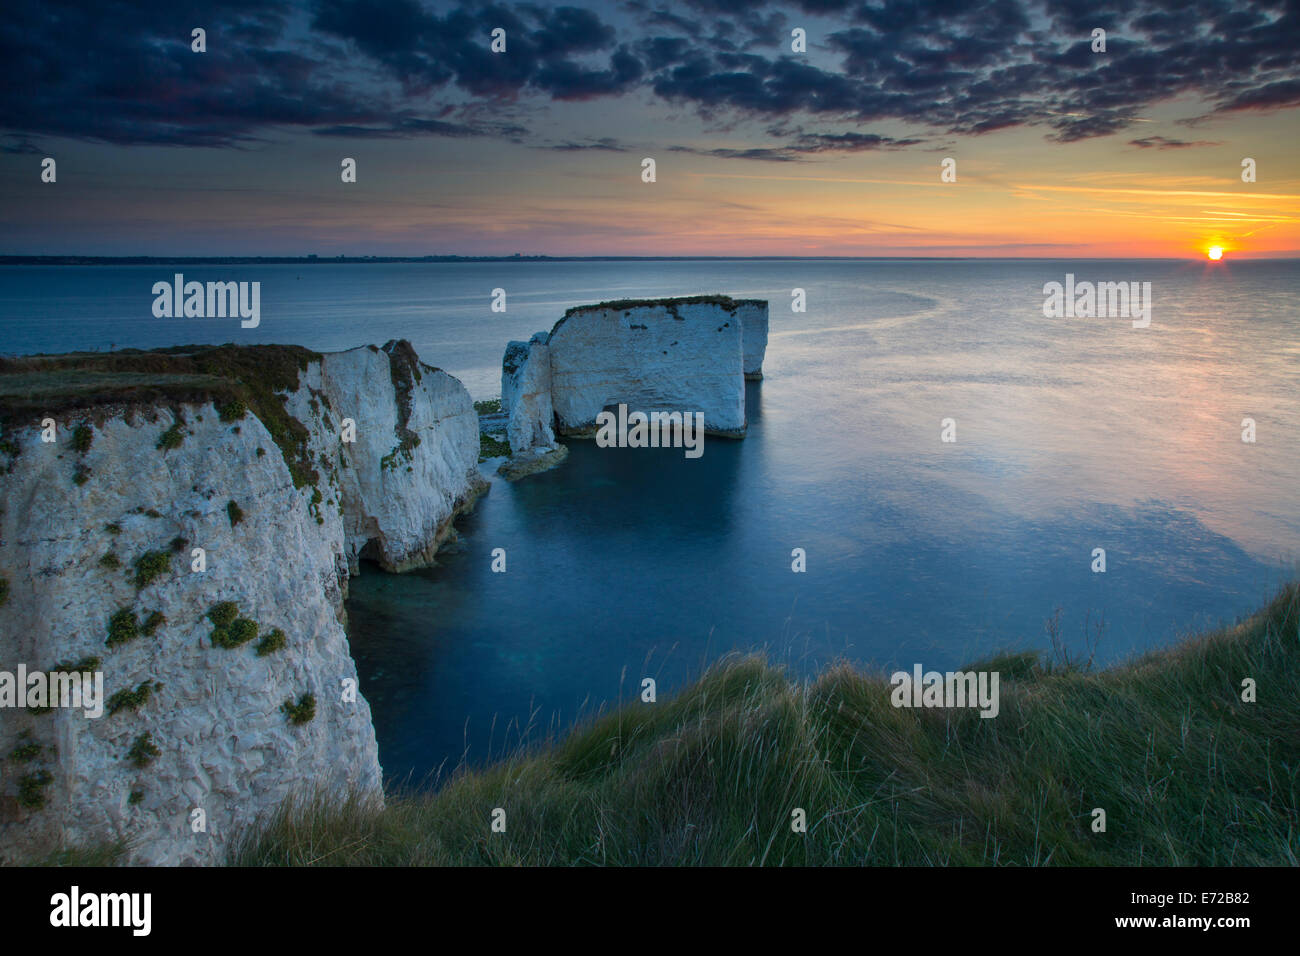 Sunrise over The white cliffs and Harry Rocks at Studland, Isle of Purbeck, Jurassic Coast, Dorset, England - Stock Image